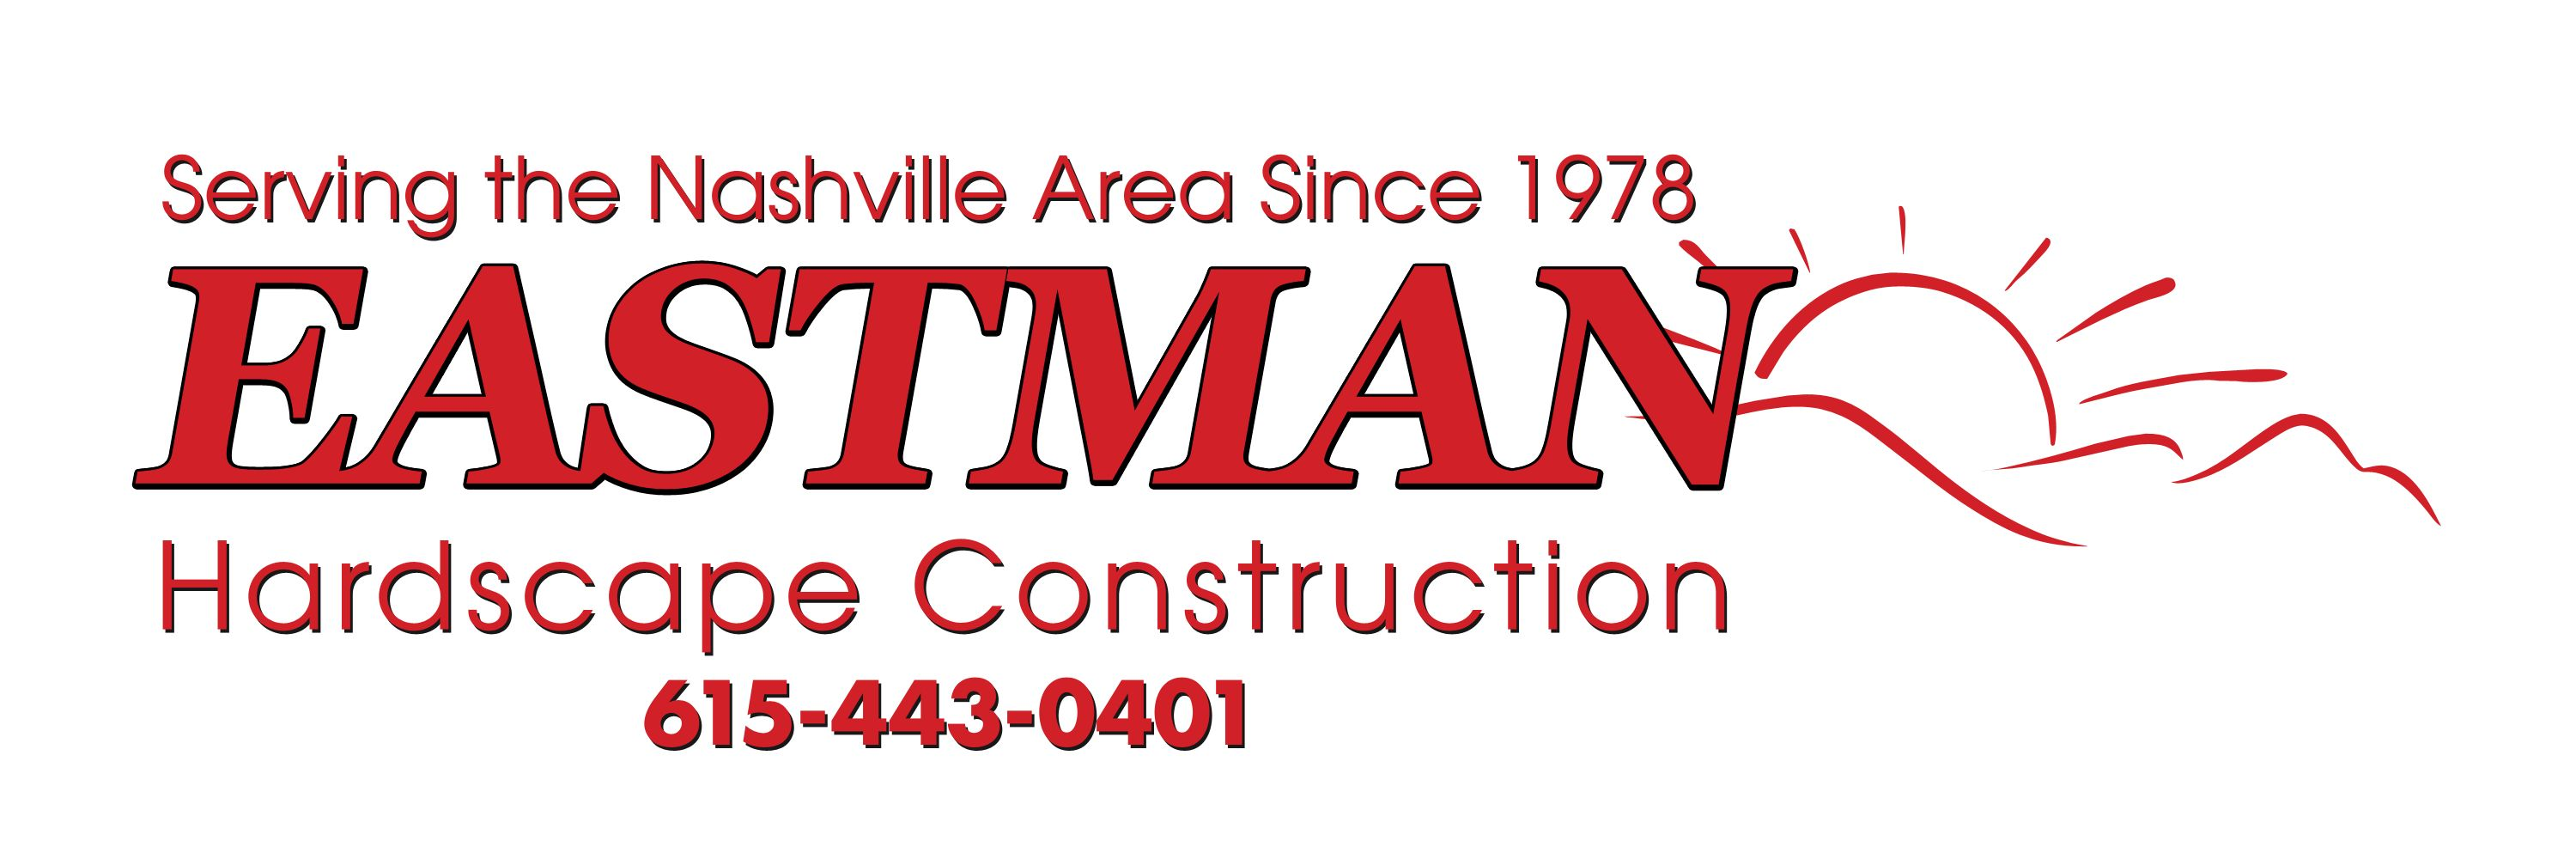 Eastman Hardscape Construction logo